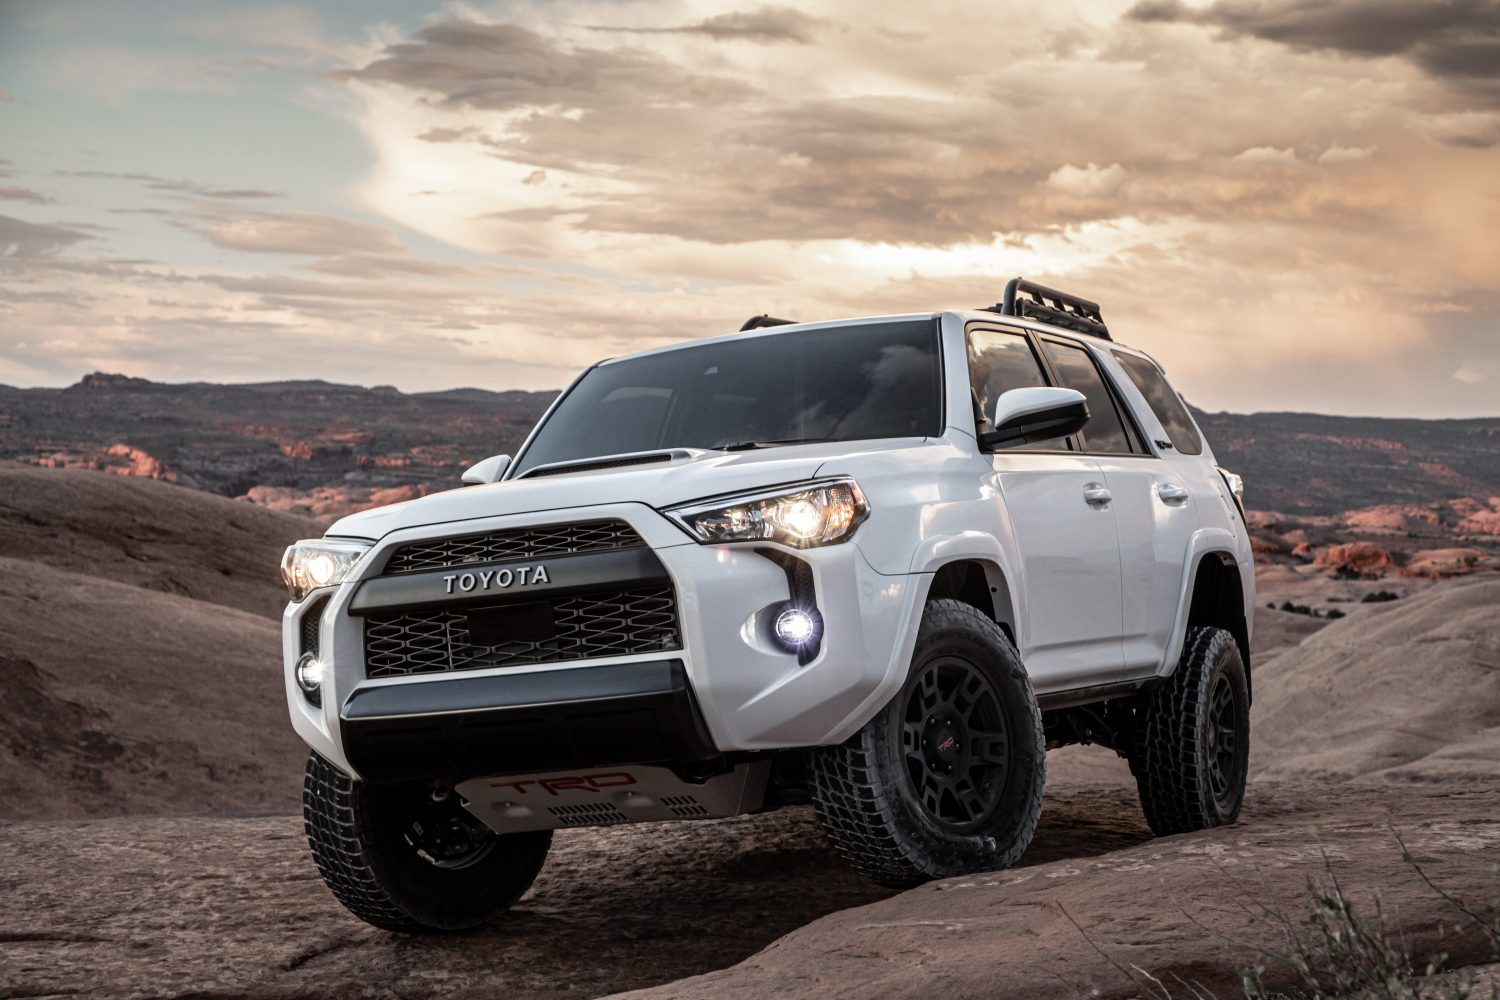 The Adventurer Toyota 4runner Gains New Safety And Multimedia Tech For 2020 Toyota Usa Newsroom